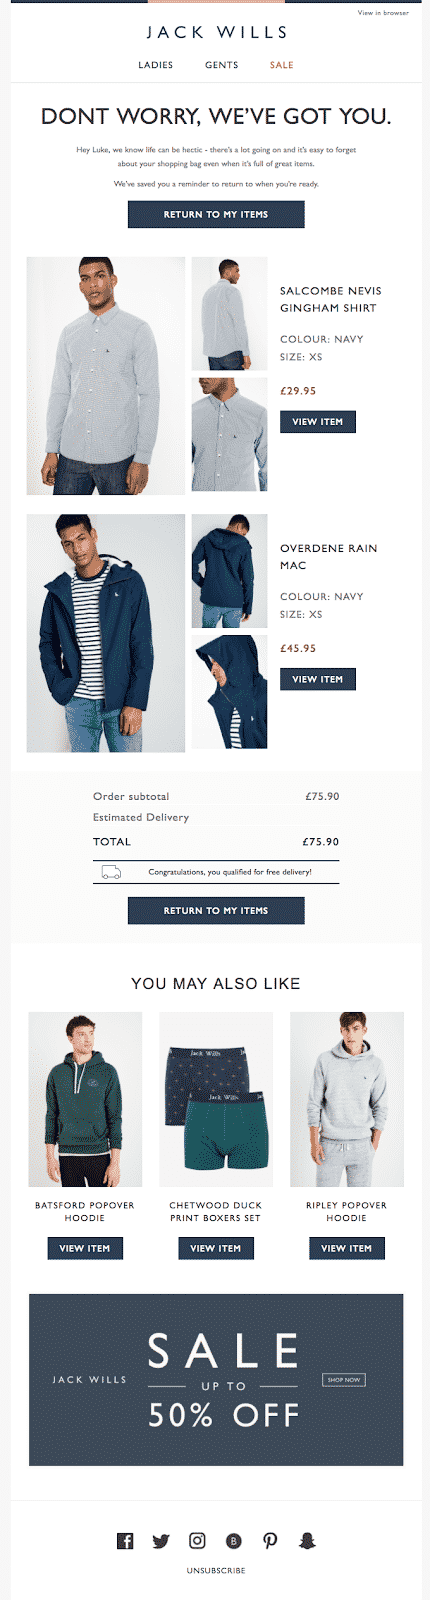 Cart abandonment email from Jack Wills